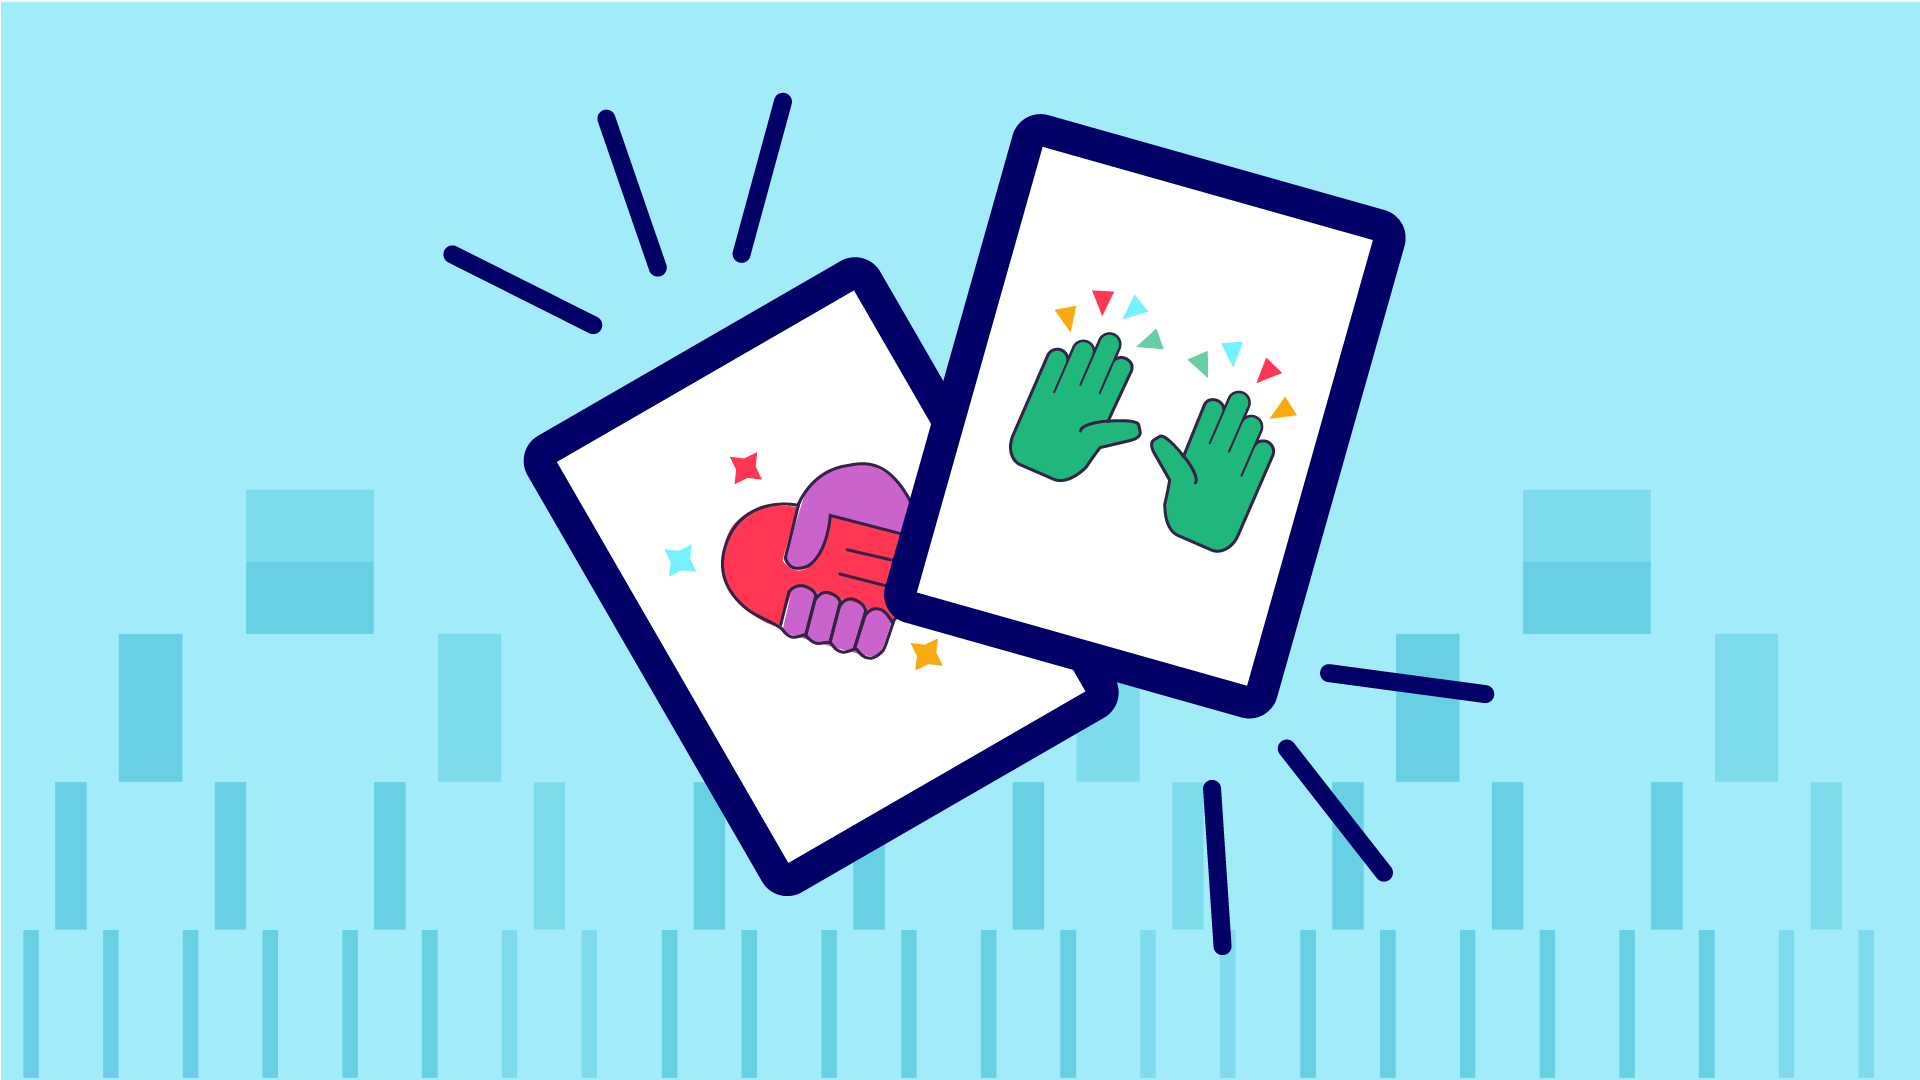 Two flash cards presented on a playful angle